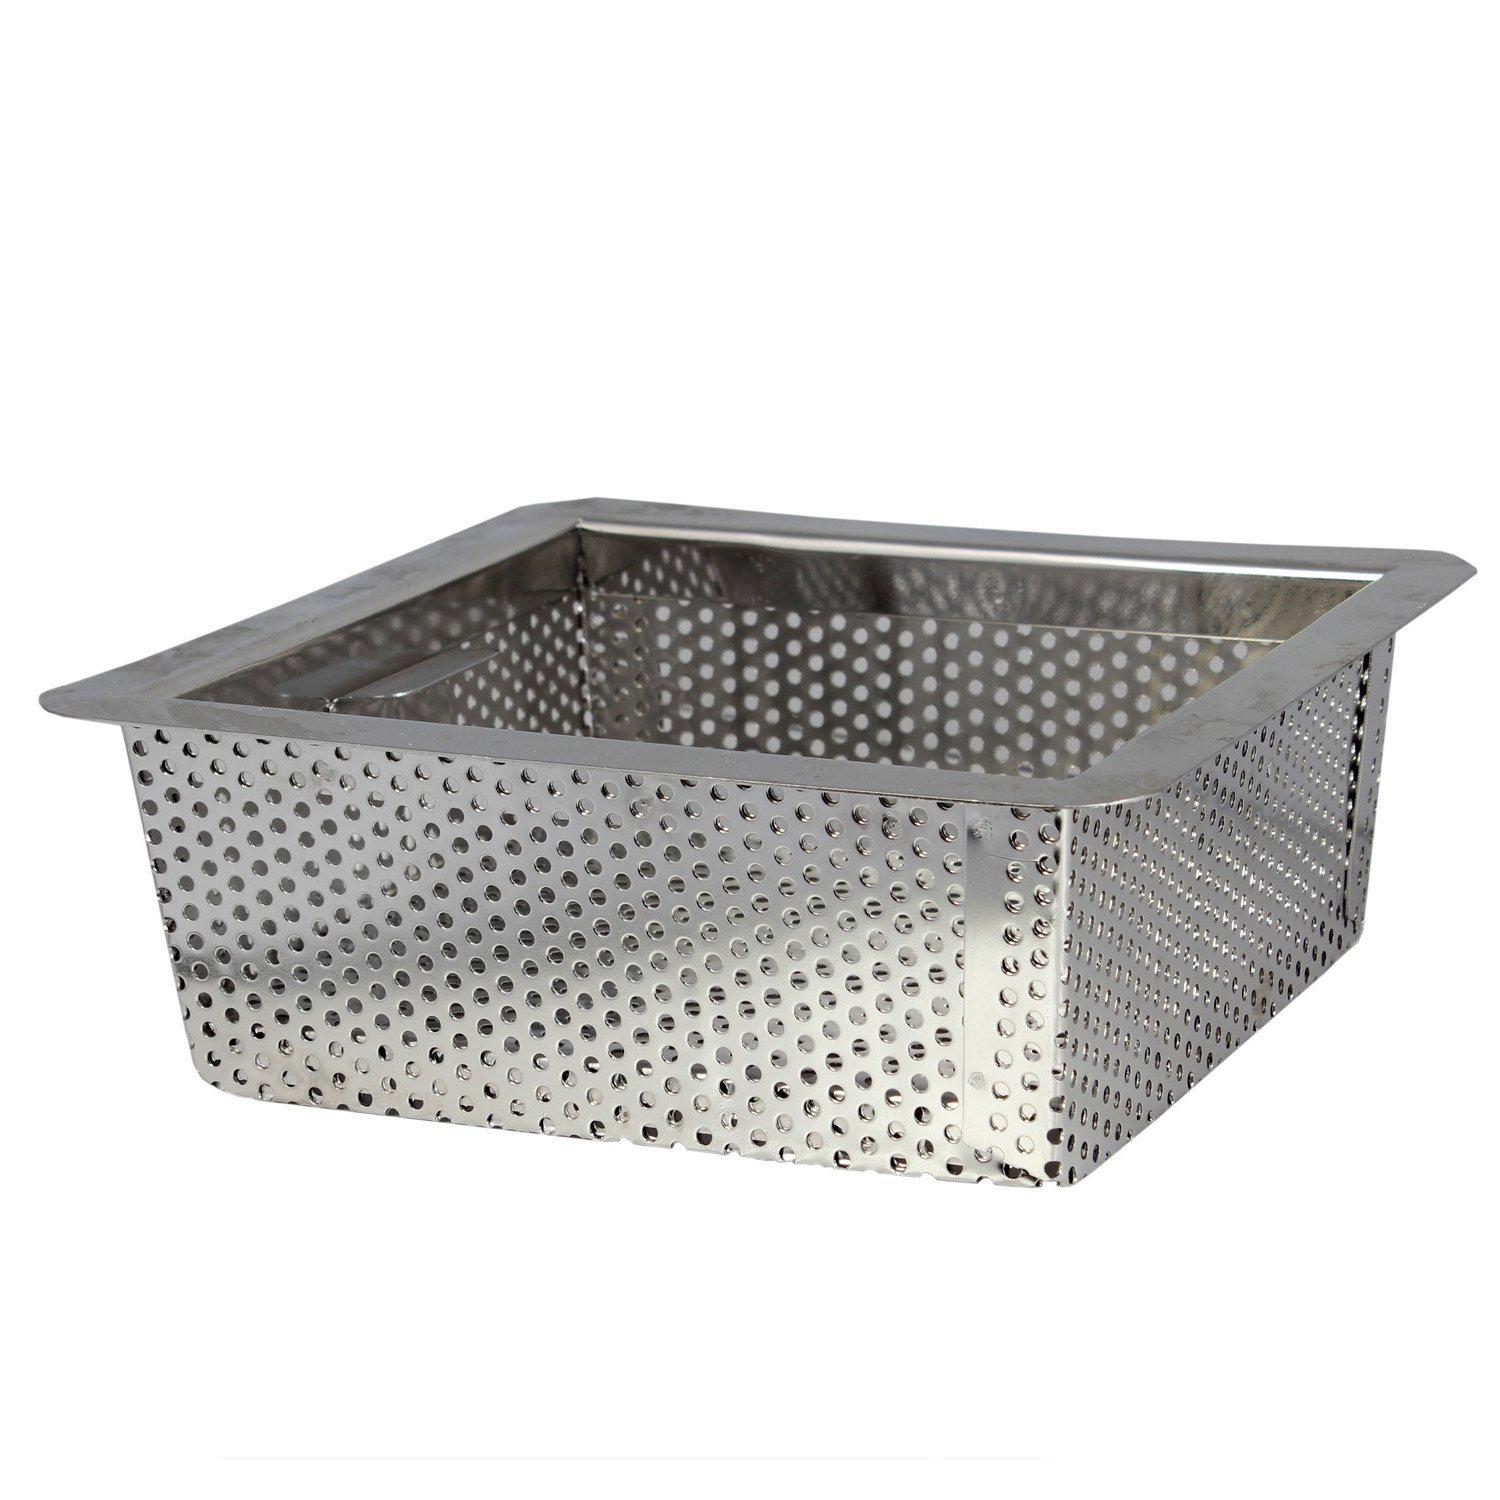 Commercial Sink Strainer : Basket Drain Strainer - Stainless Steel for restaurants & commercial ...